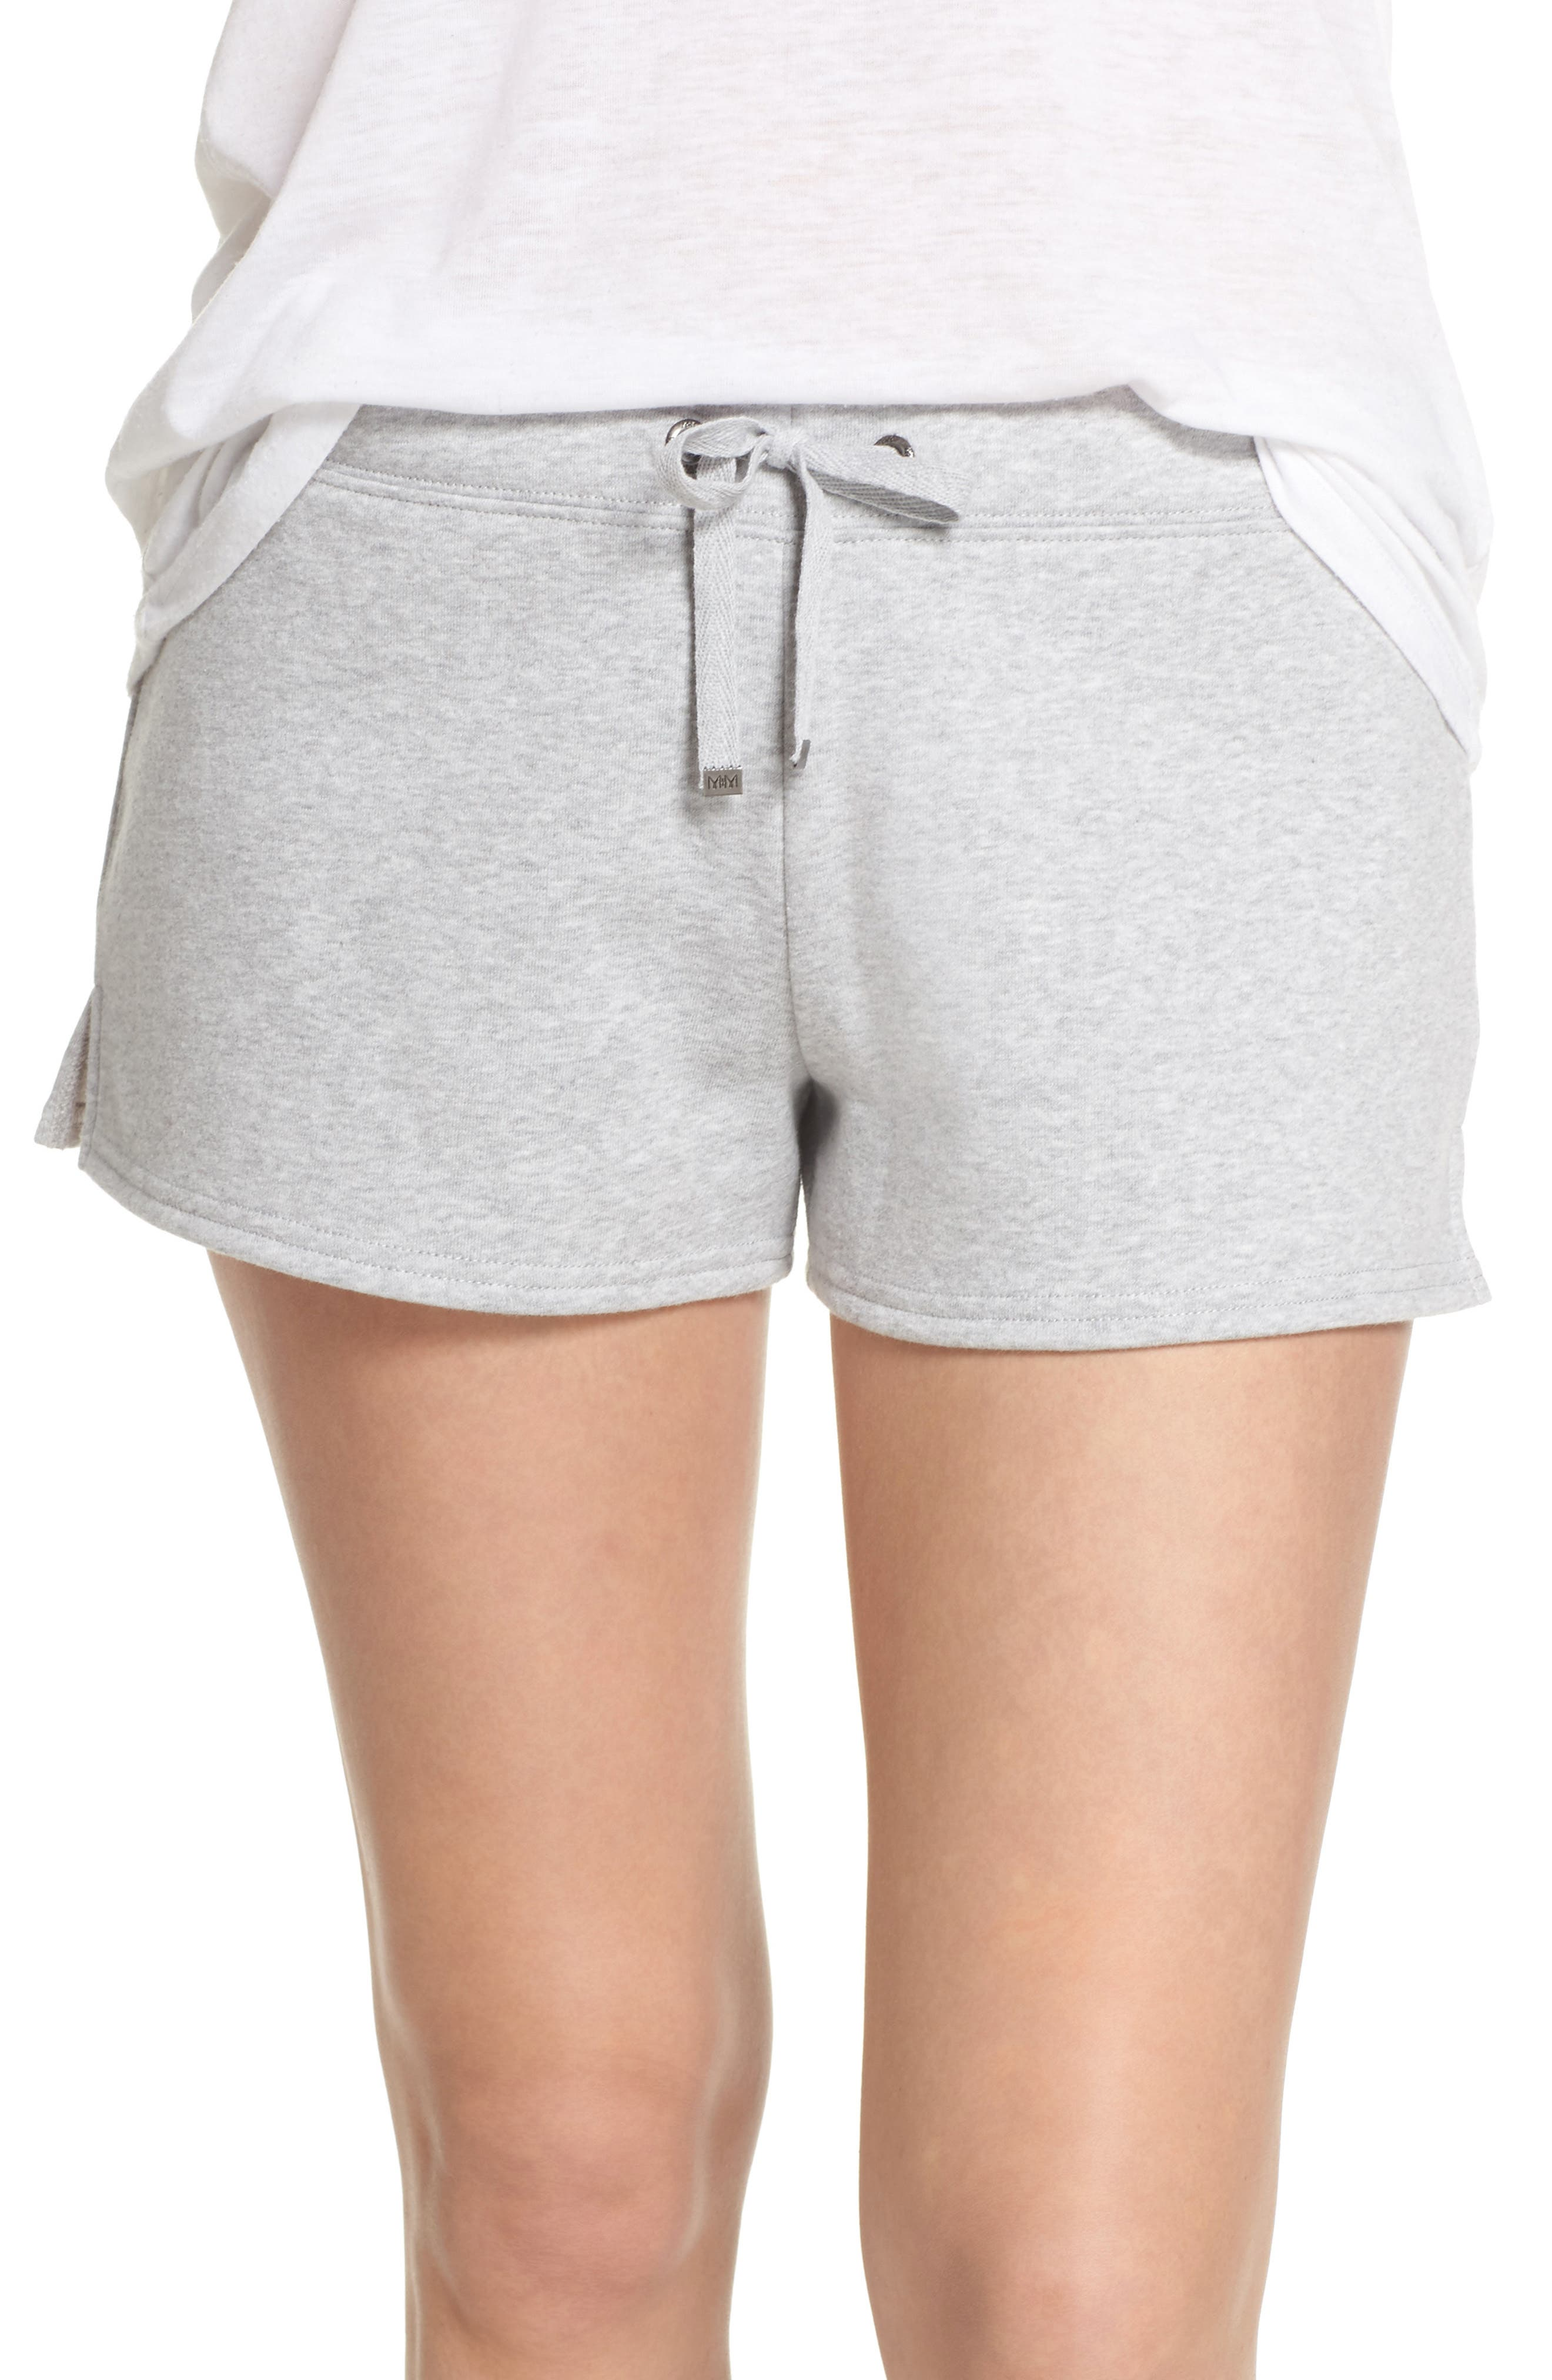 Take It Easy Lounge Shorts,                             Main thumbnail 1, color,                             021